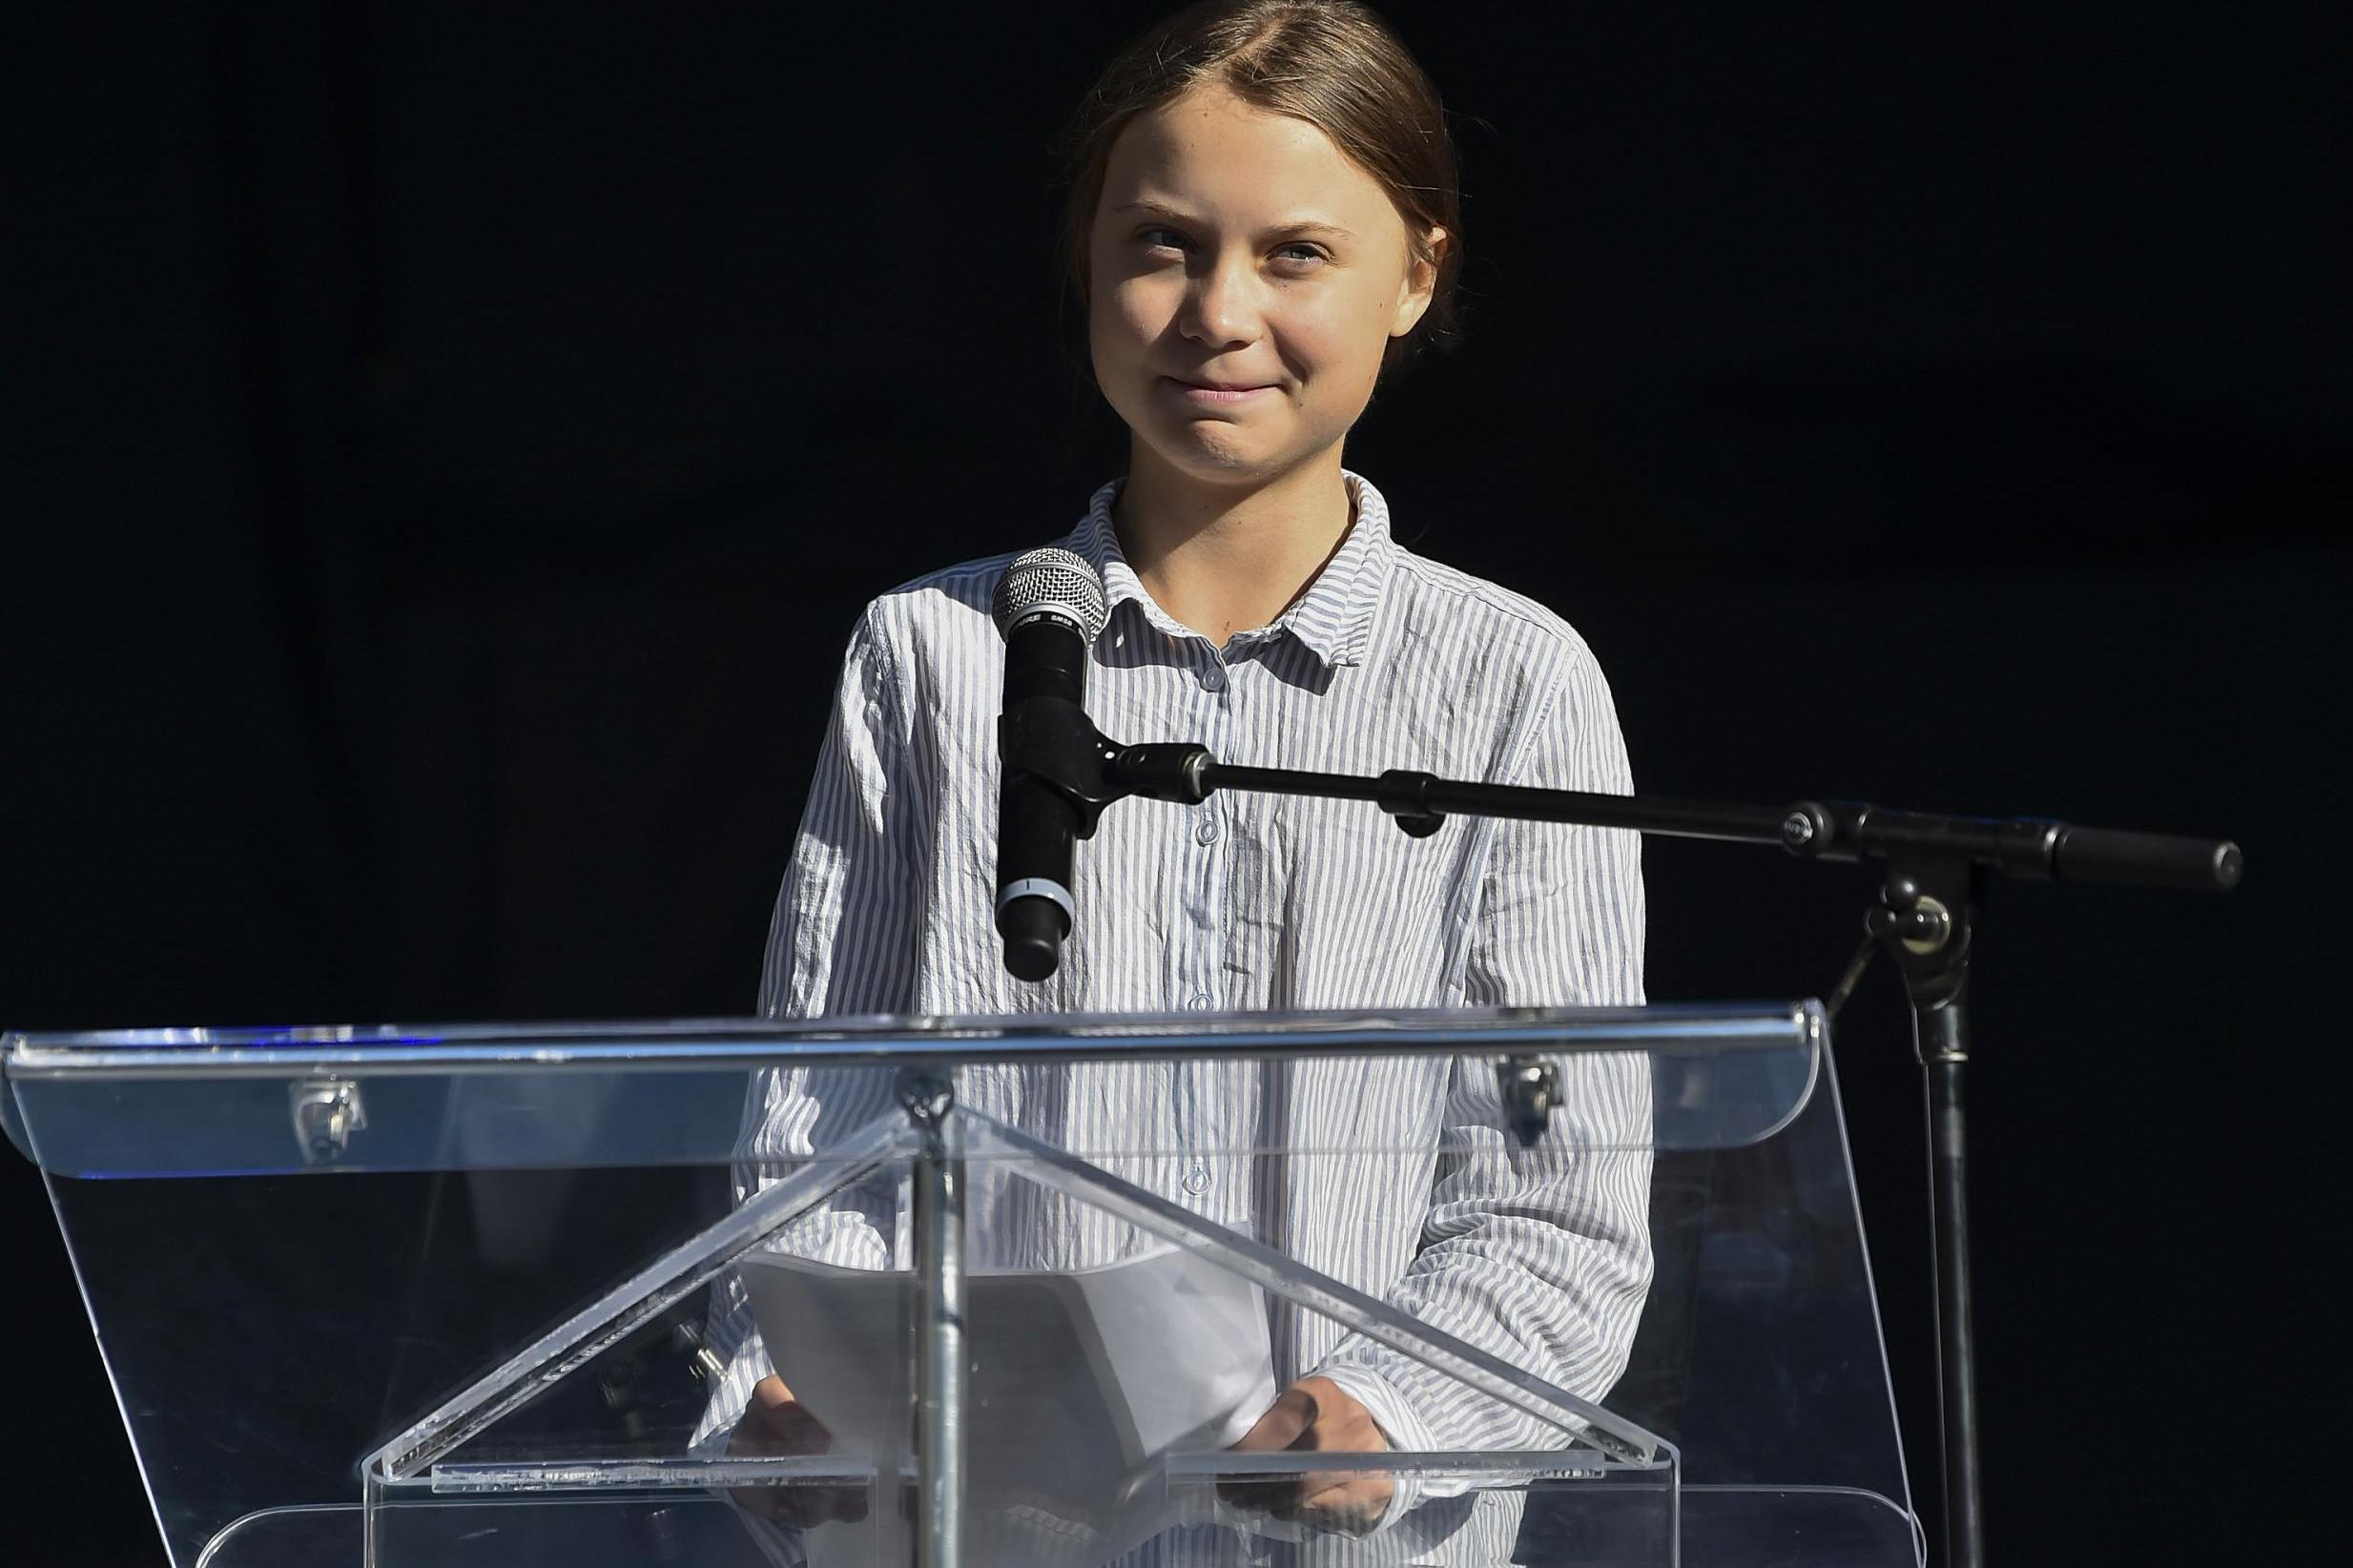 Fatboy Slim remixes Right Here, Right Now with Greta Thunberg's United Nations speech